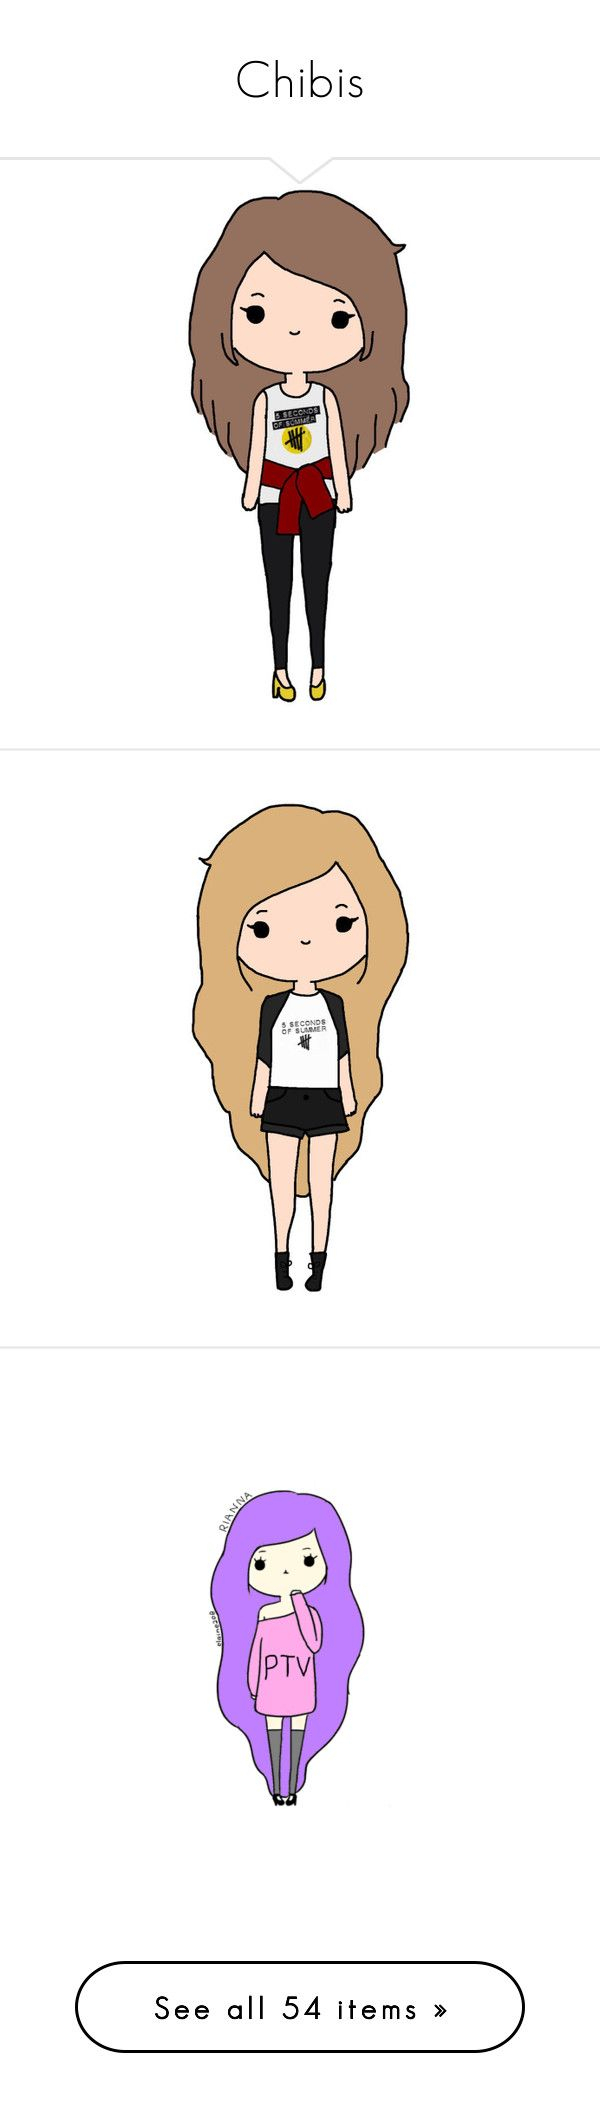 600x2113 Tumblr Cute Drawings Cute Drawing Tumblr Cute Drawings To Draw